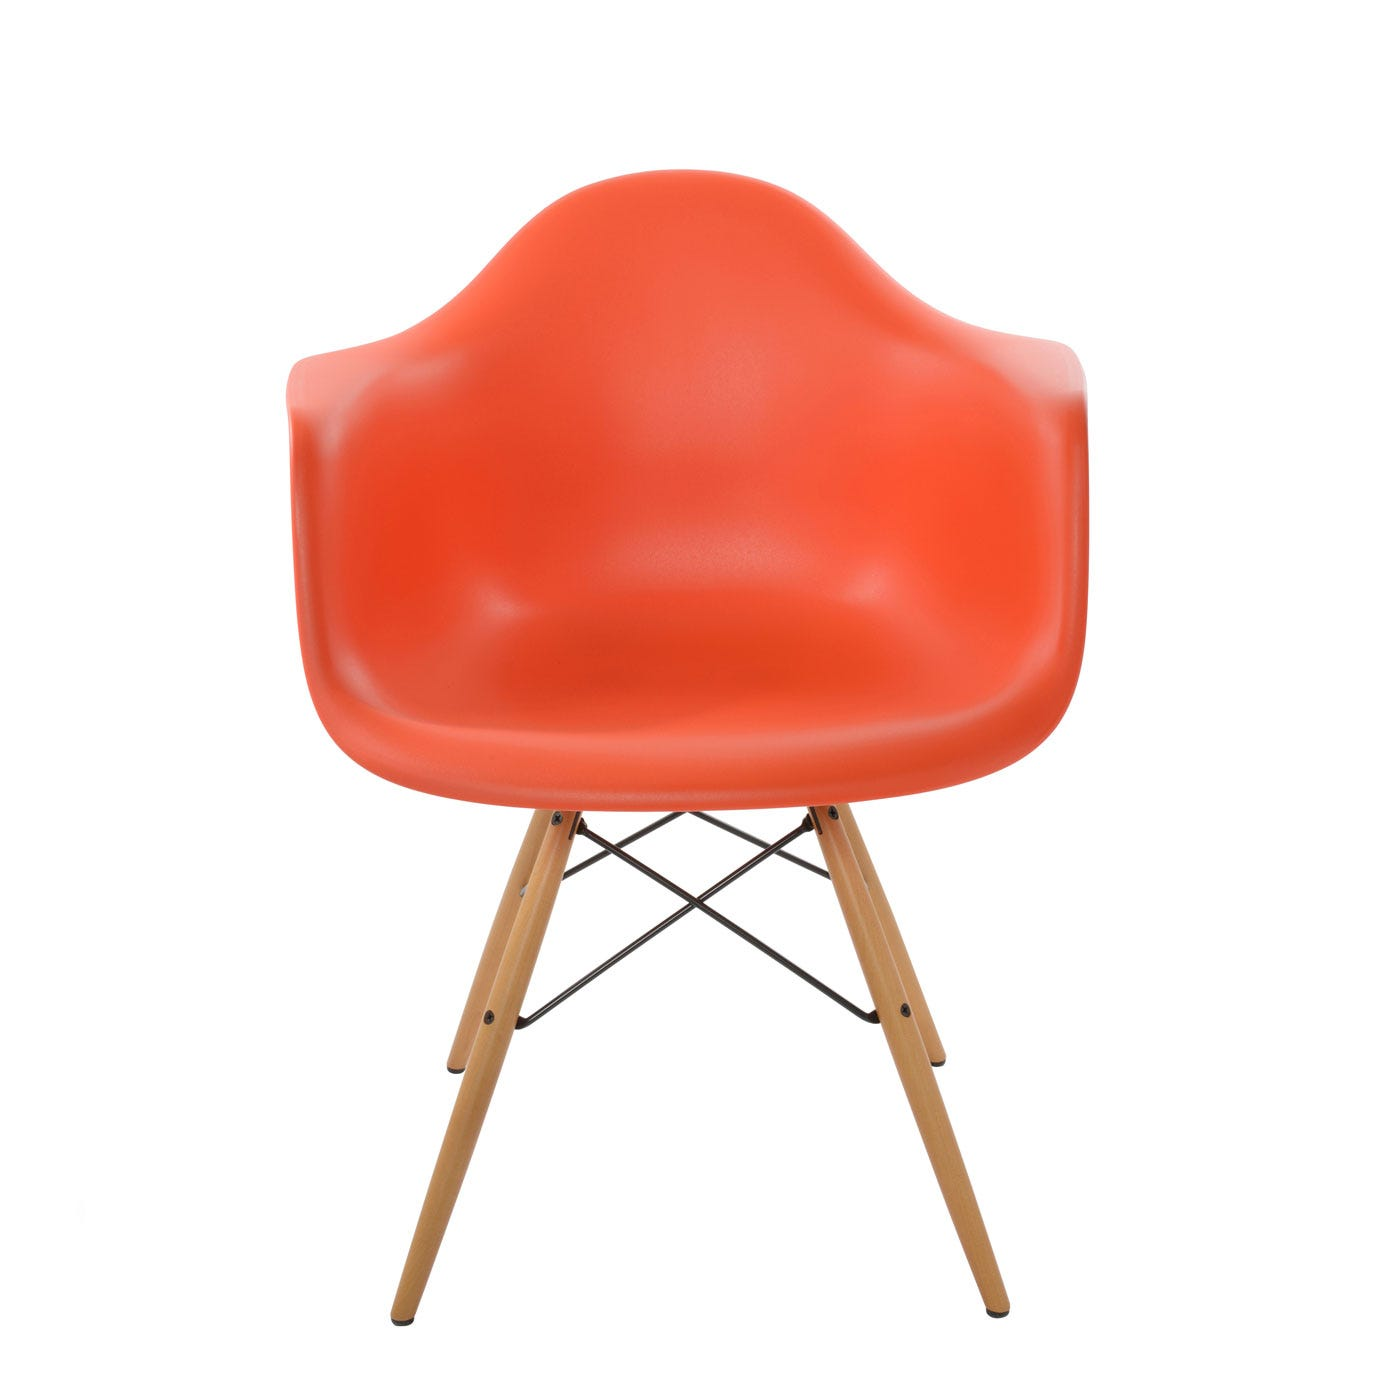 DAW Chair by Charles & Ray Eames